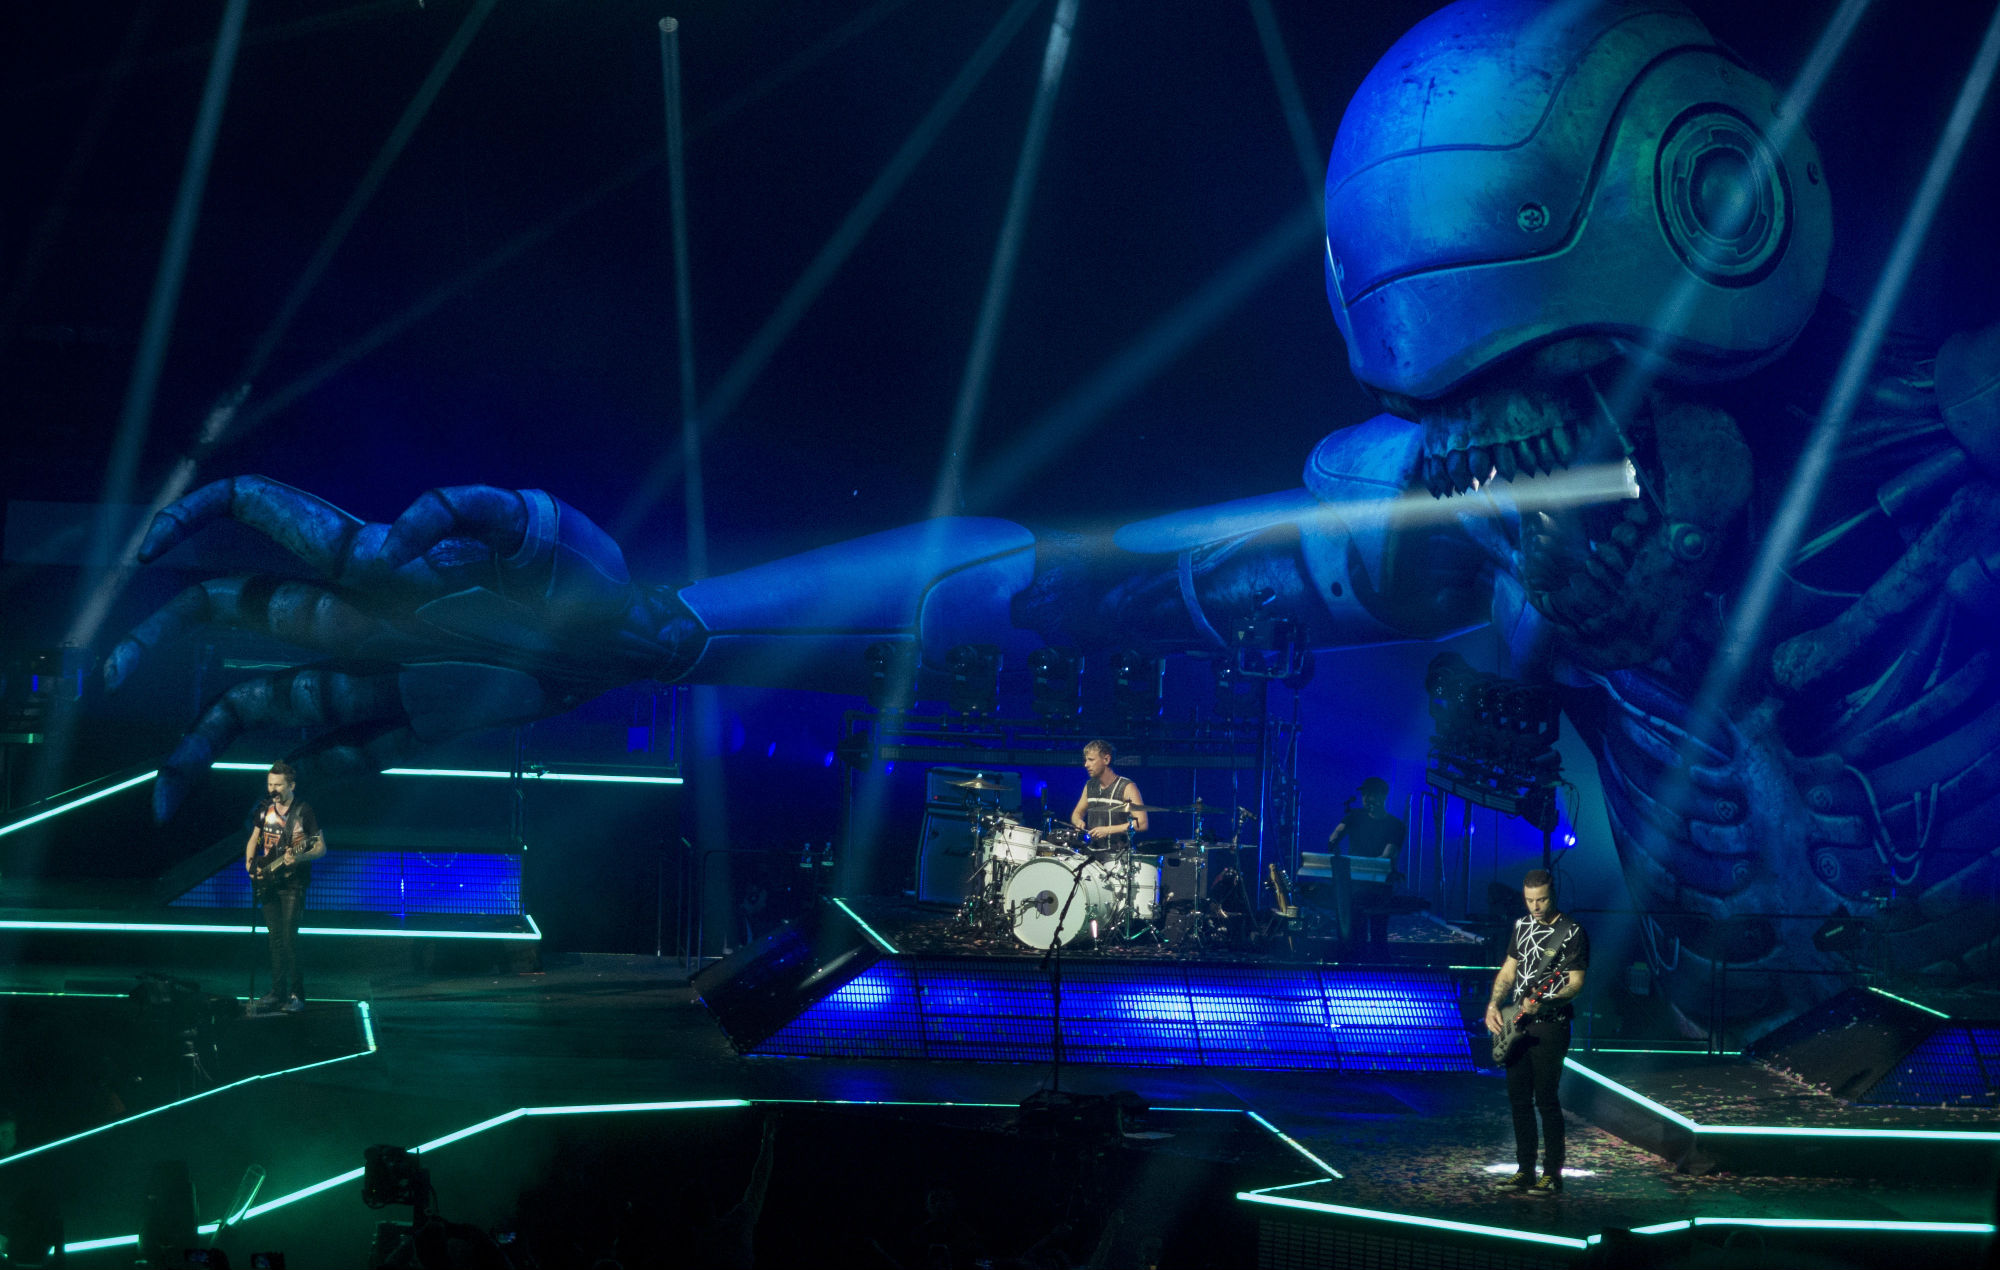 Confetti banknotes! Drones! The all-seeing-eye! A brief history of Muse's brilliantly bizarre tours